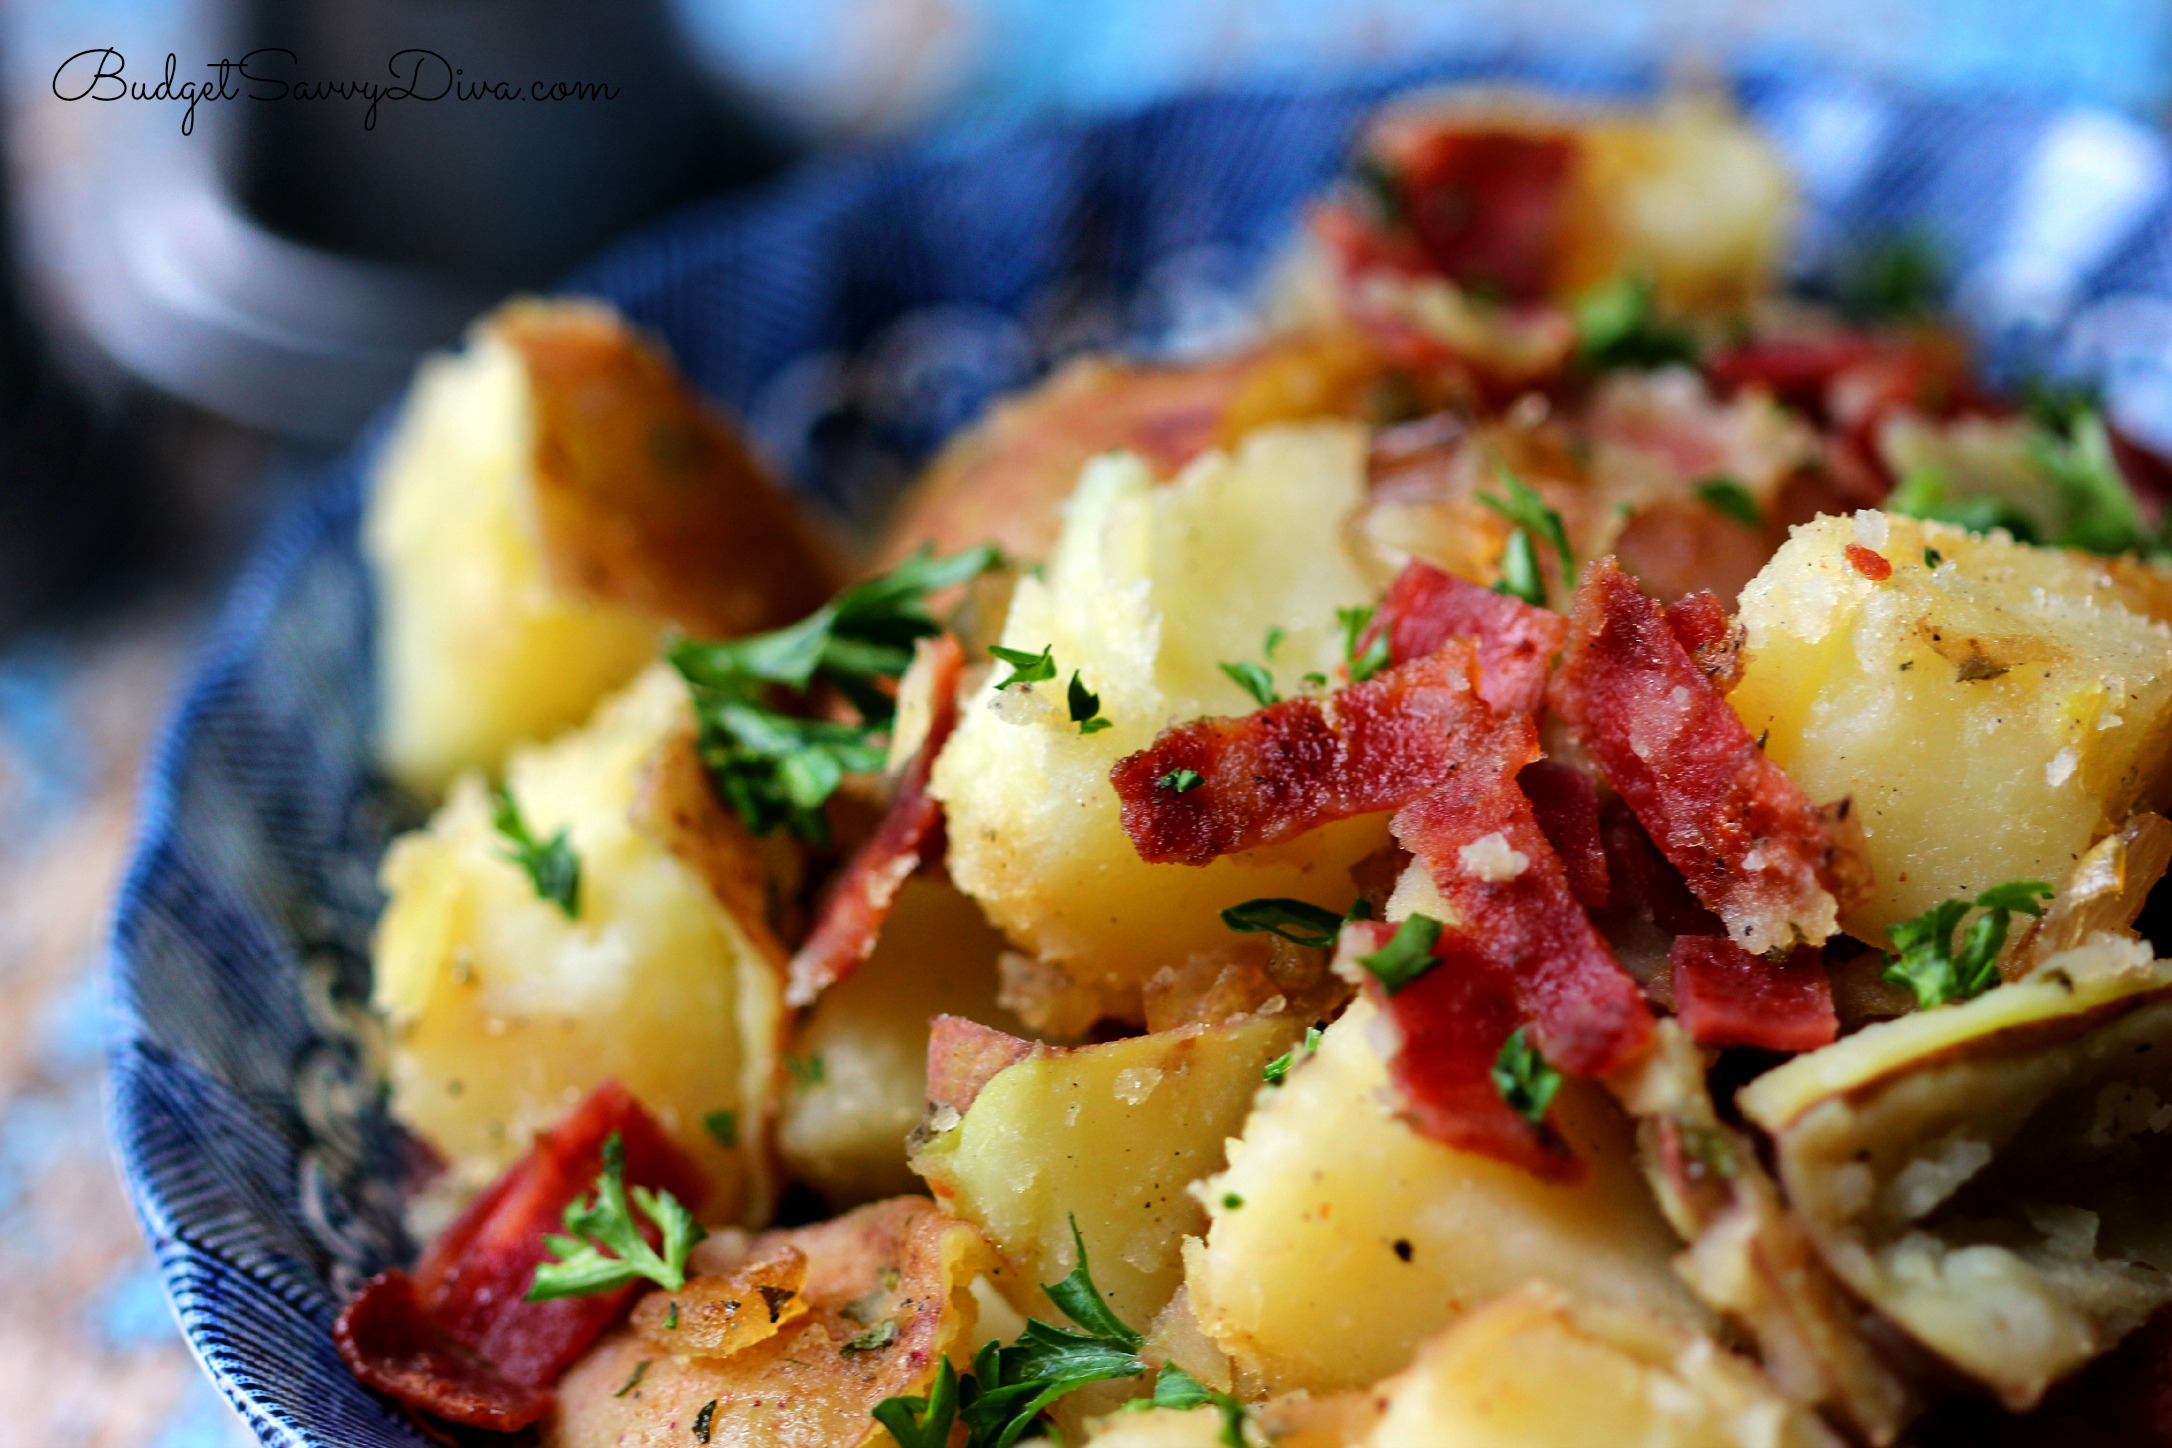 German Potato Salad Recipe | Budget Savvy Diva